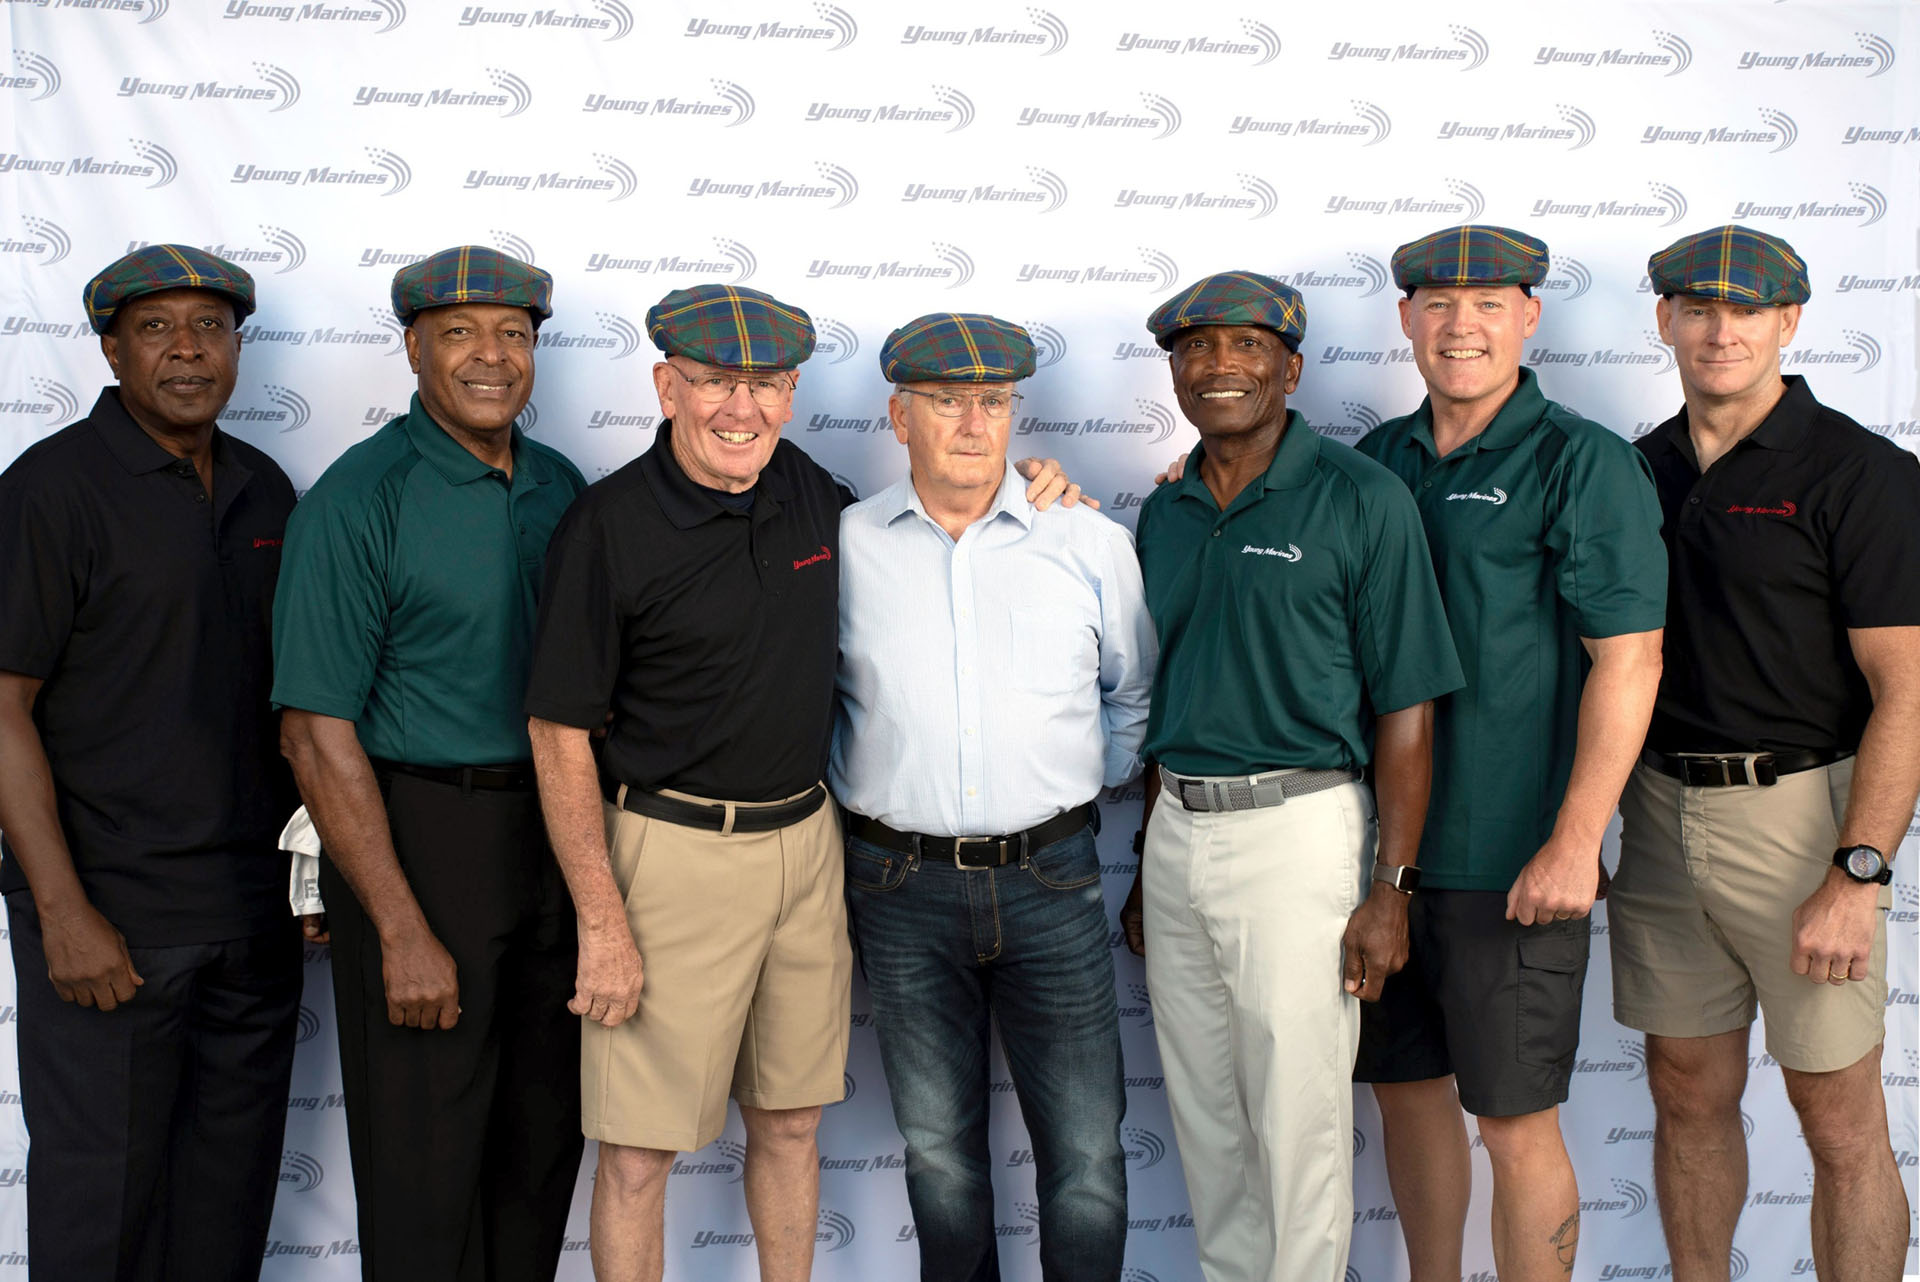 Young Marines golf tournament honors former actor